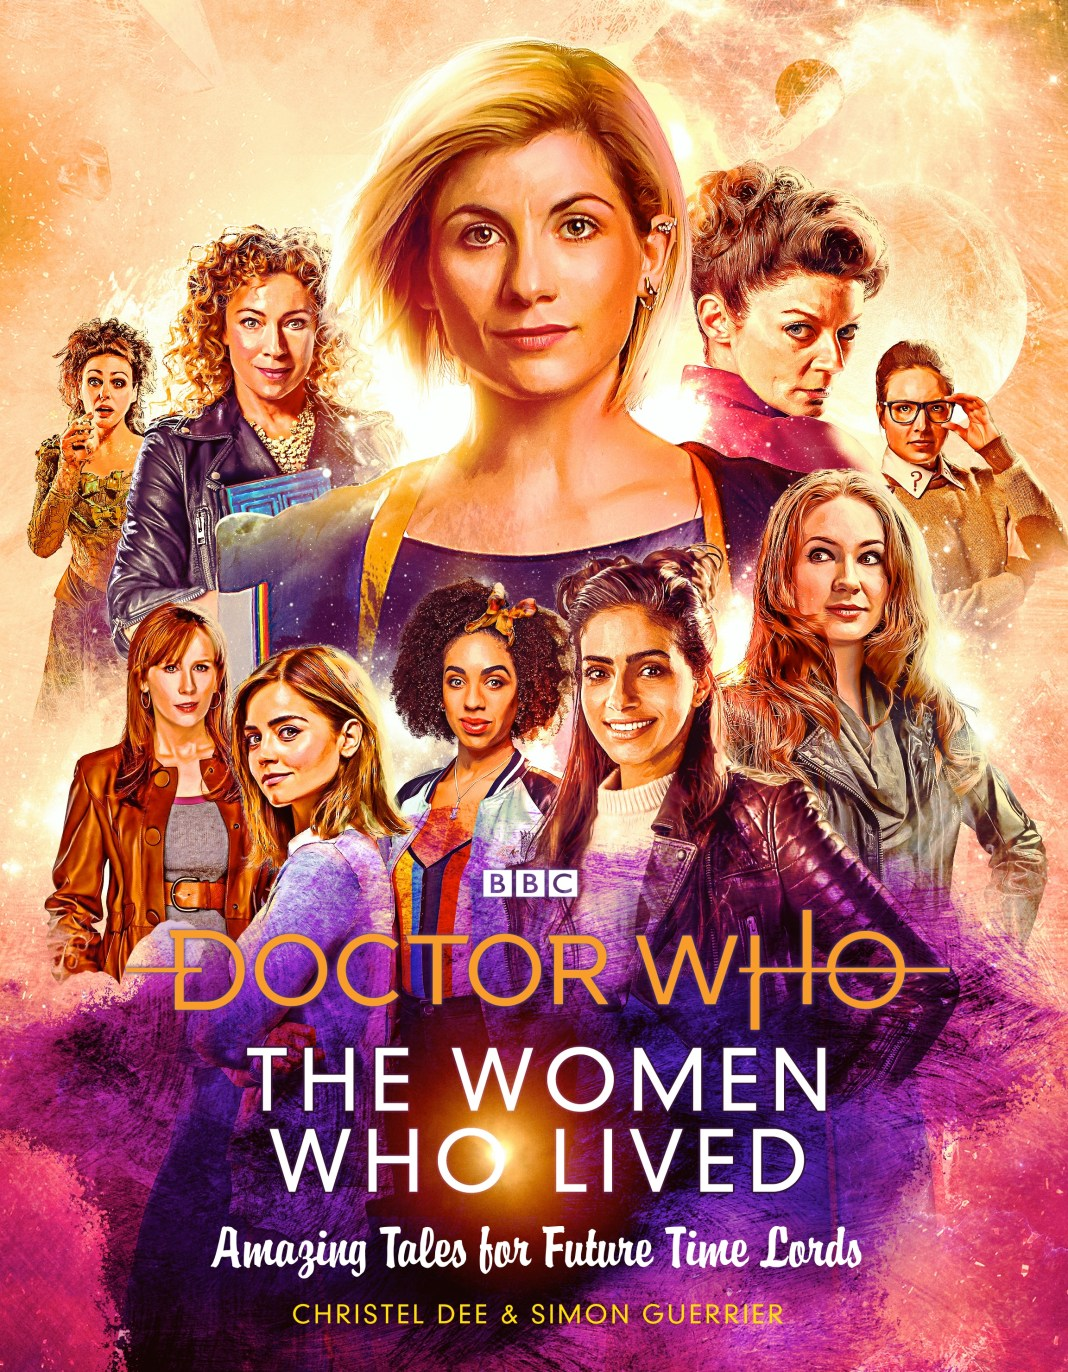 Doctor Who: The Women Who Lived - Tales for Future Time Lords. Cover by Lee Binding (c) BBC Books